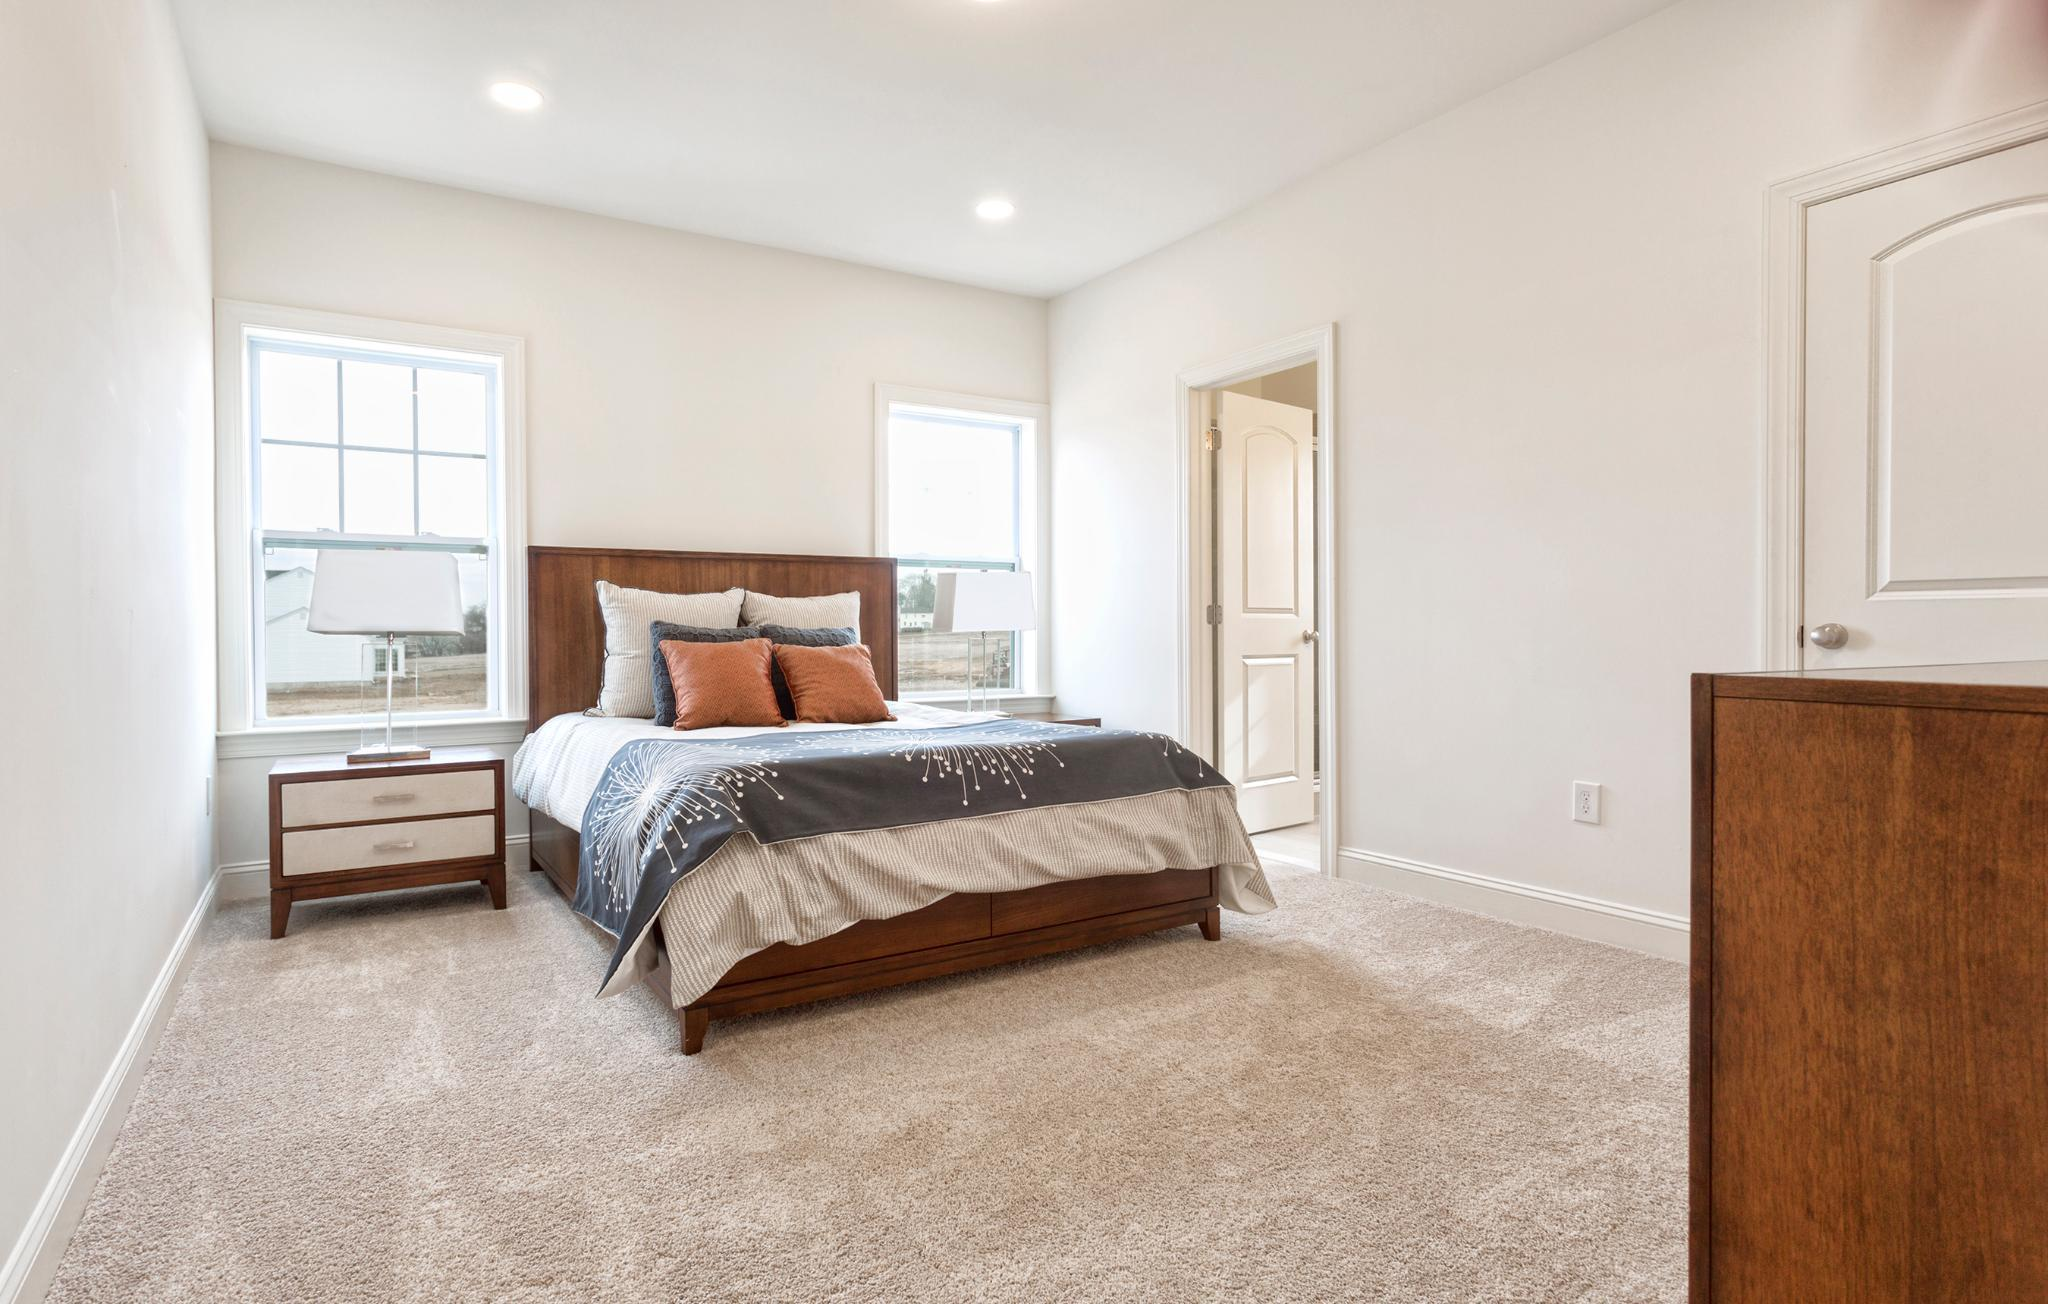 Bedroom featured in the Pinehurst Traditional By Tuskes Homes in Scranton-Wilkes-Barre, PA